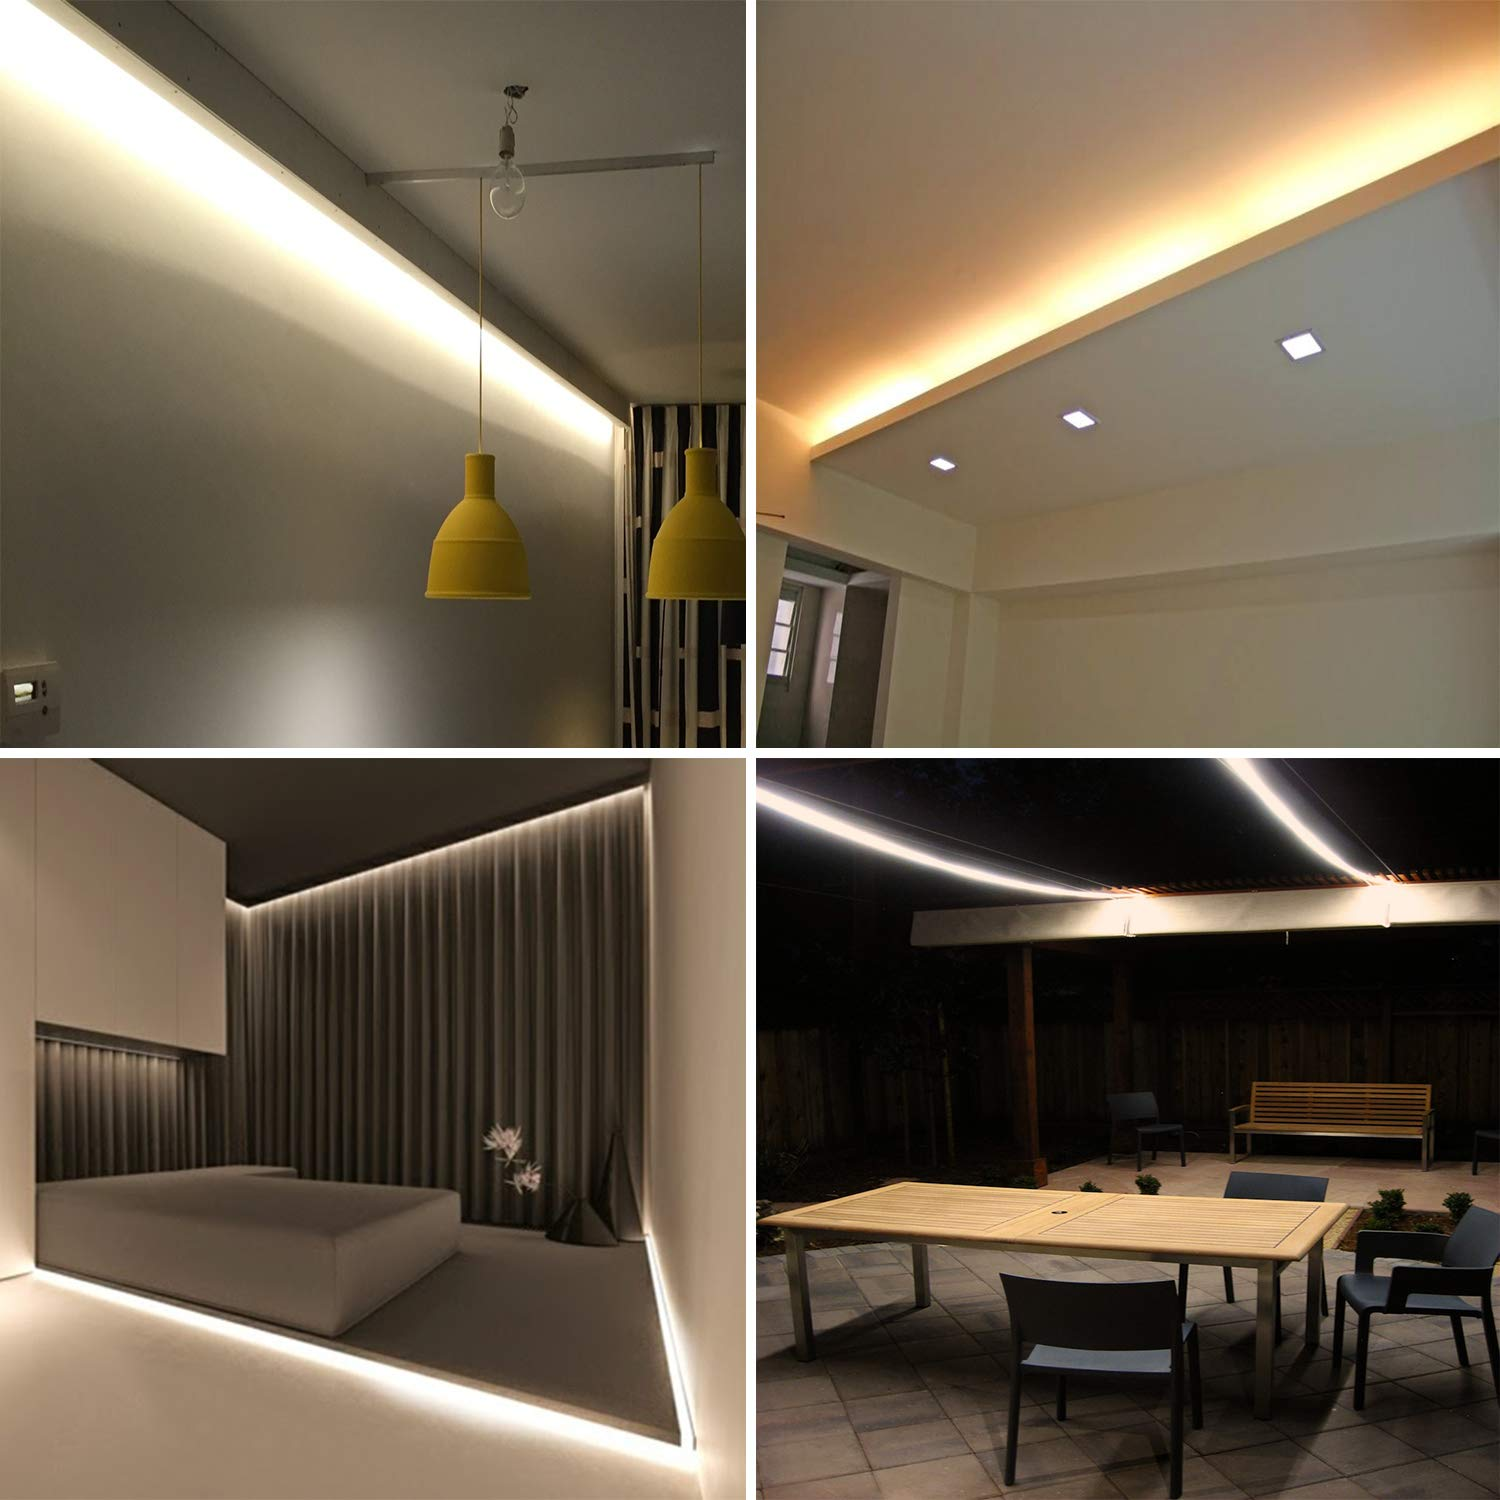 50ft Flat Flexible Light Strip UL Certified Inter-Connectable Decorative Lighting for Any Location. LED Rope Lights Water Resistant for Both Indoor//Outdoor Use 3000K Warm White